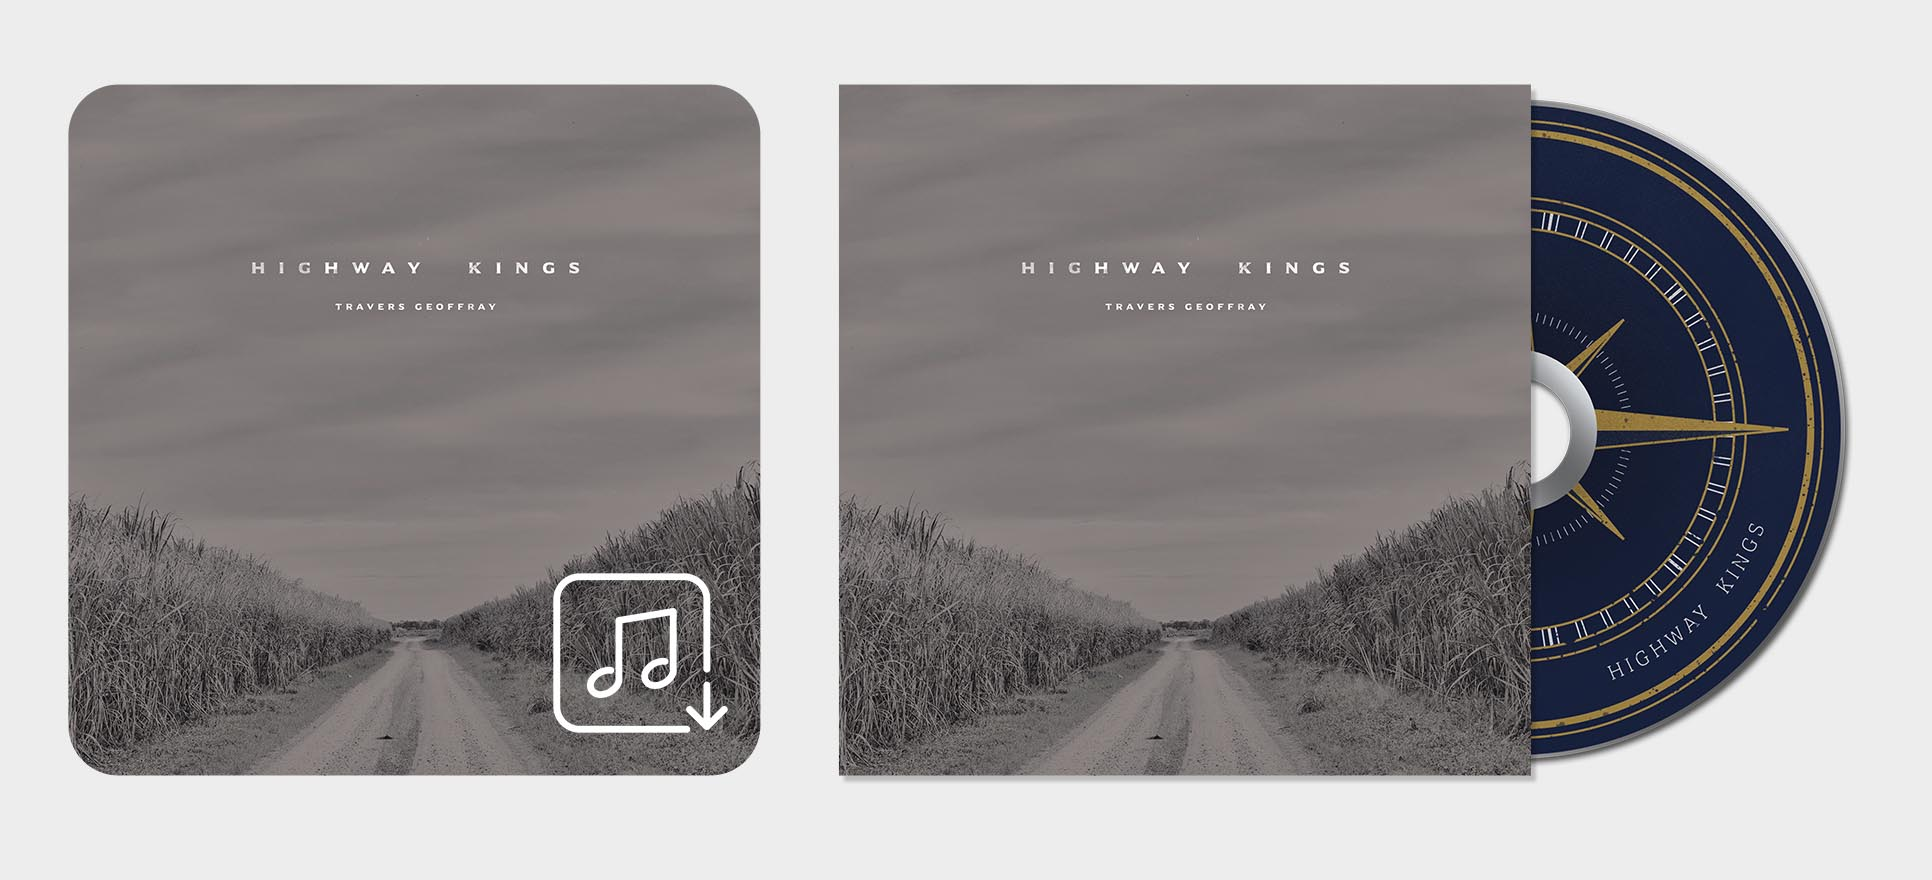 highway-kings-presale-digital-download-digipack.jpg